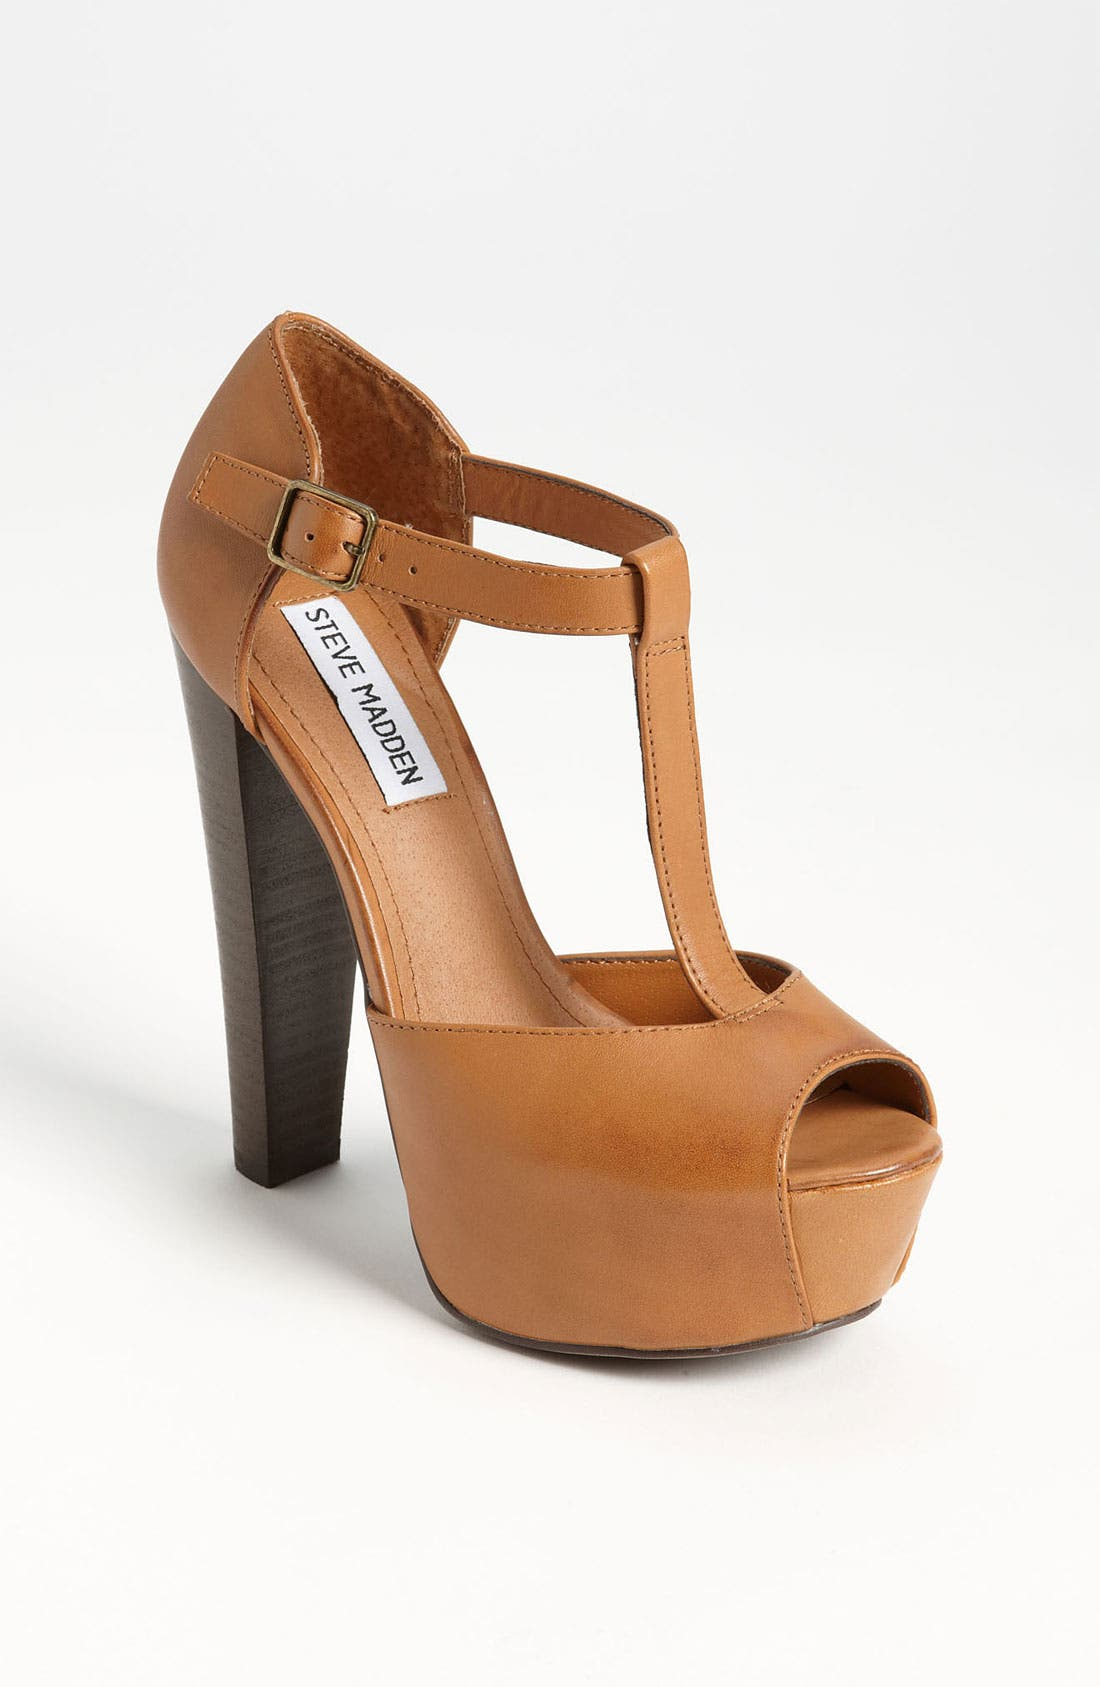 Alternate Image 1 Selected - Steve Madden 'Dyvine' Platform Pump